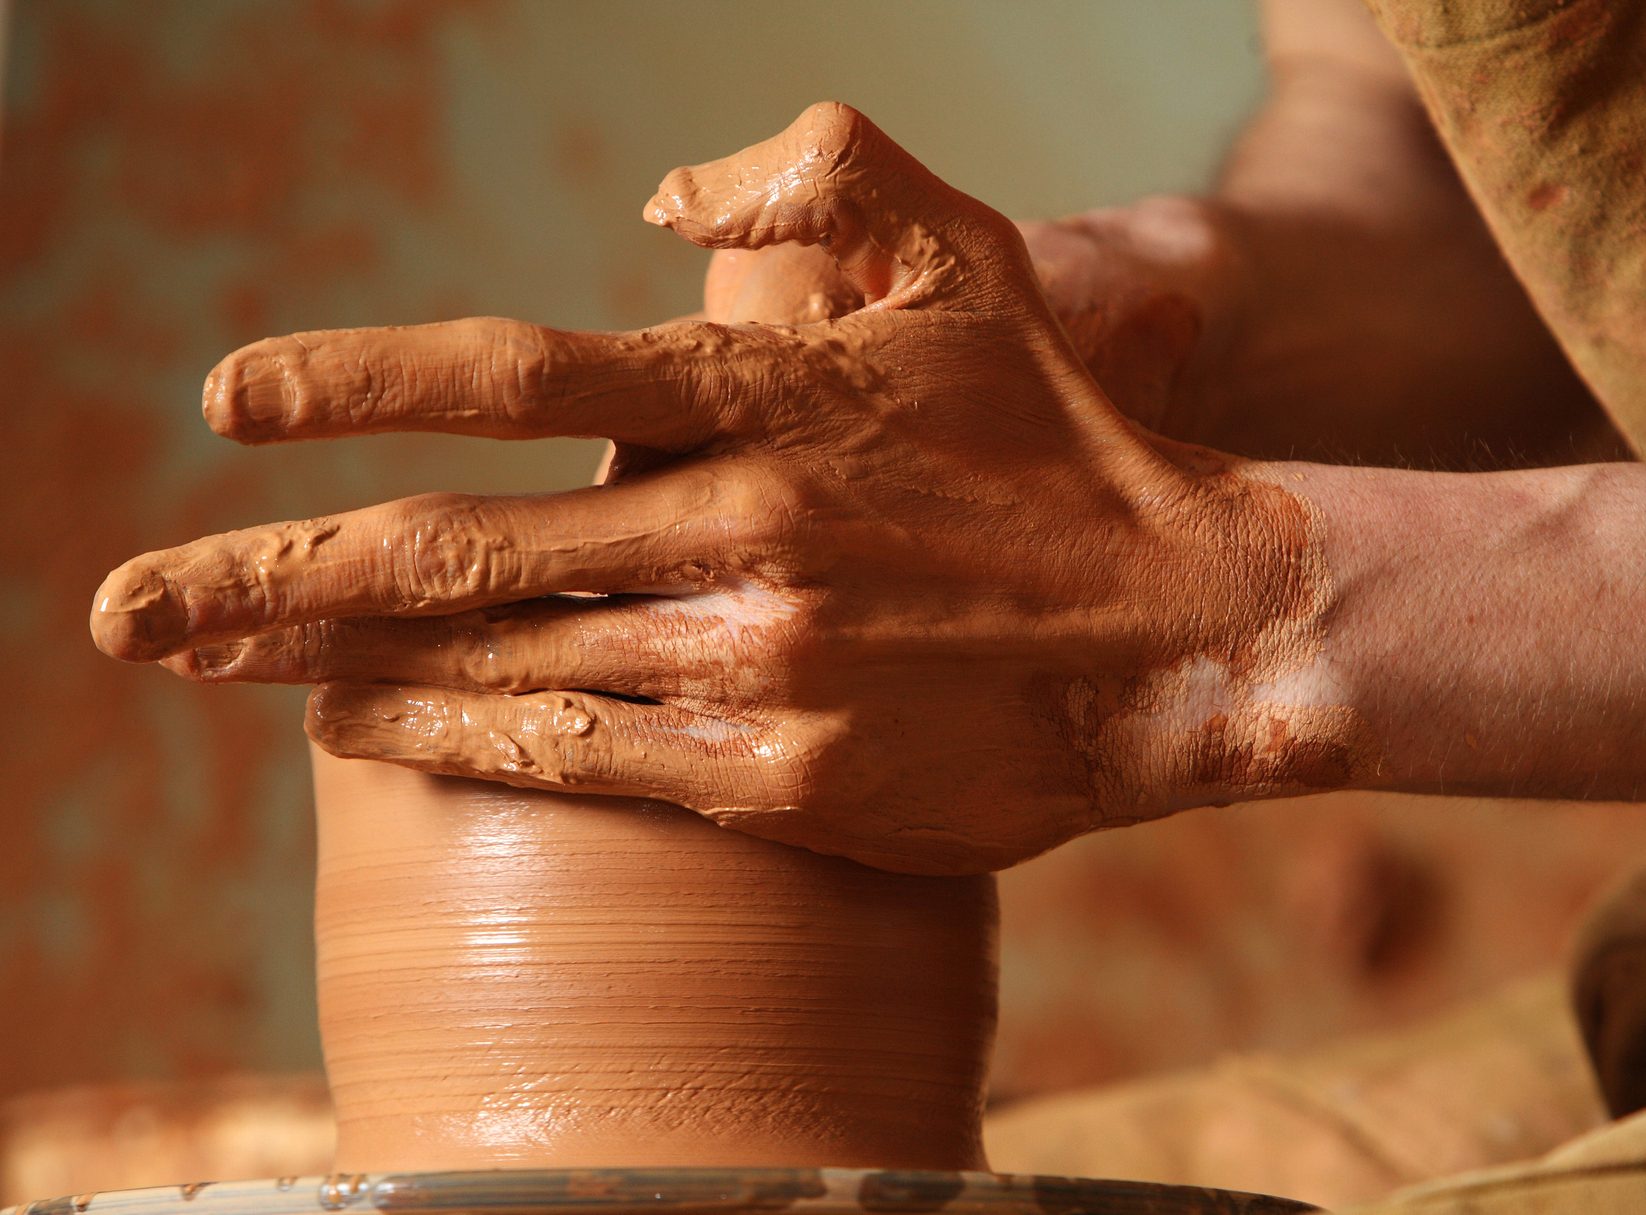 pottery, beauty, and redemptive hope